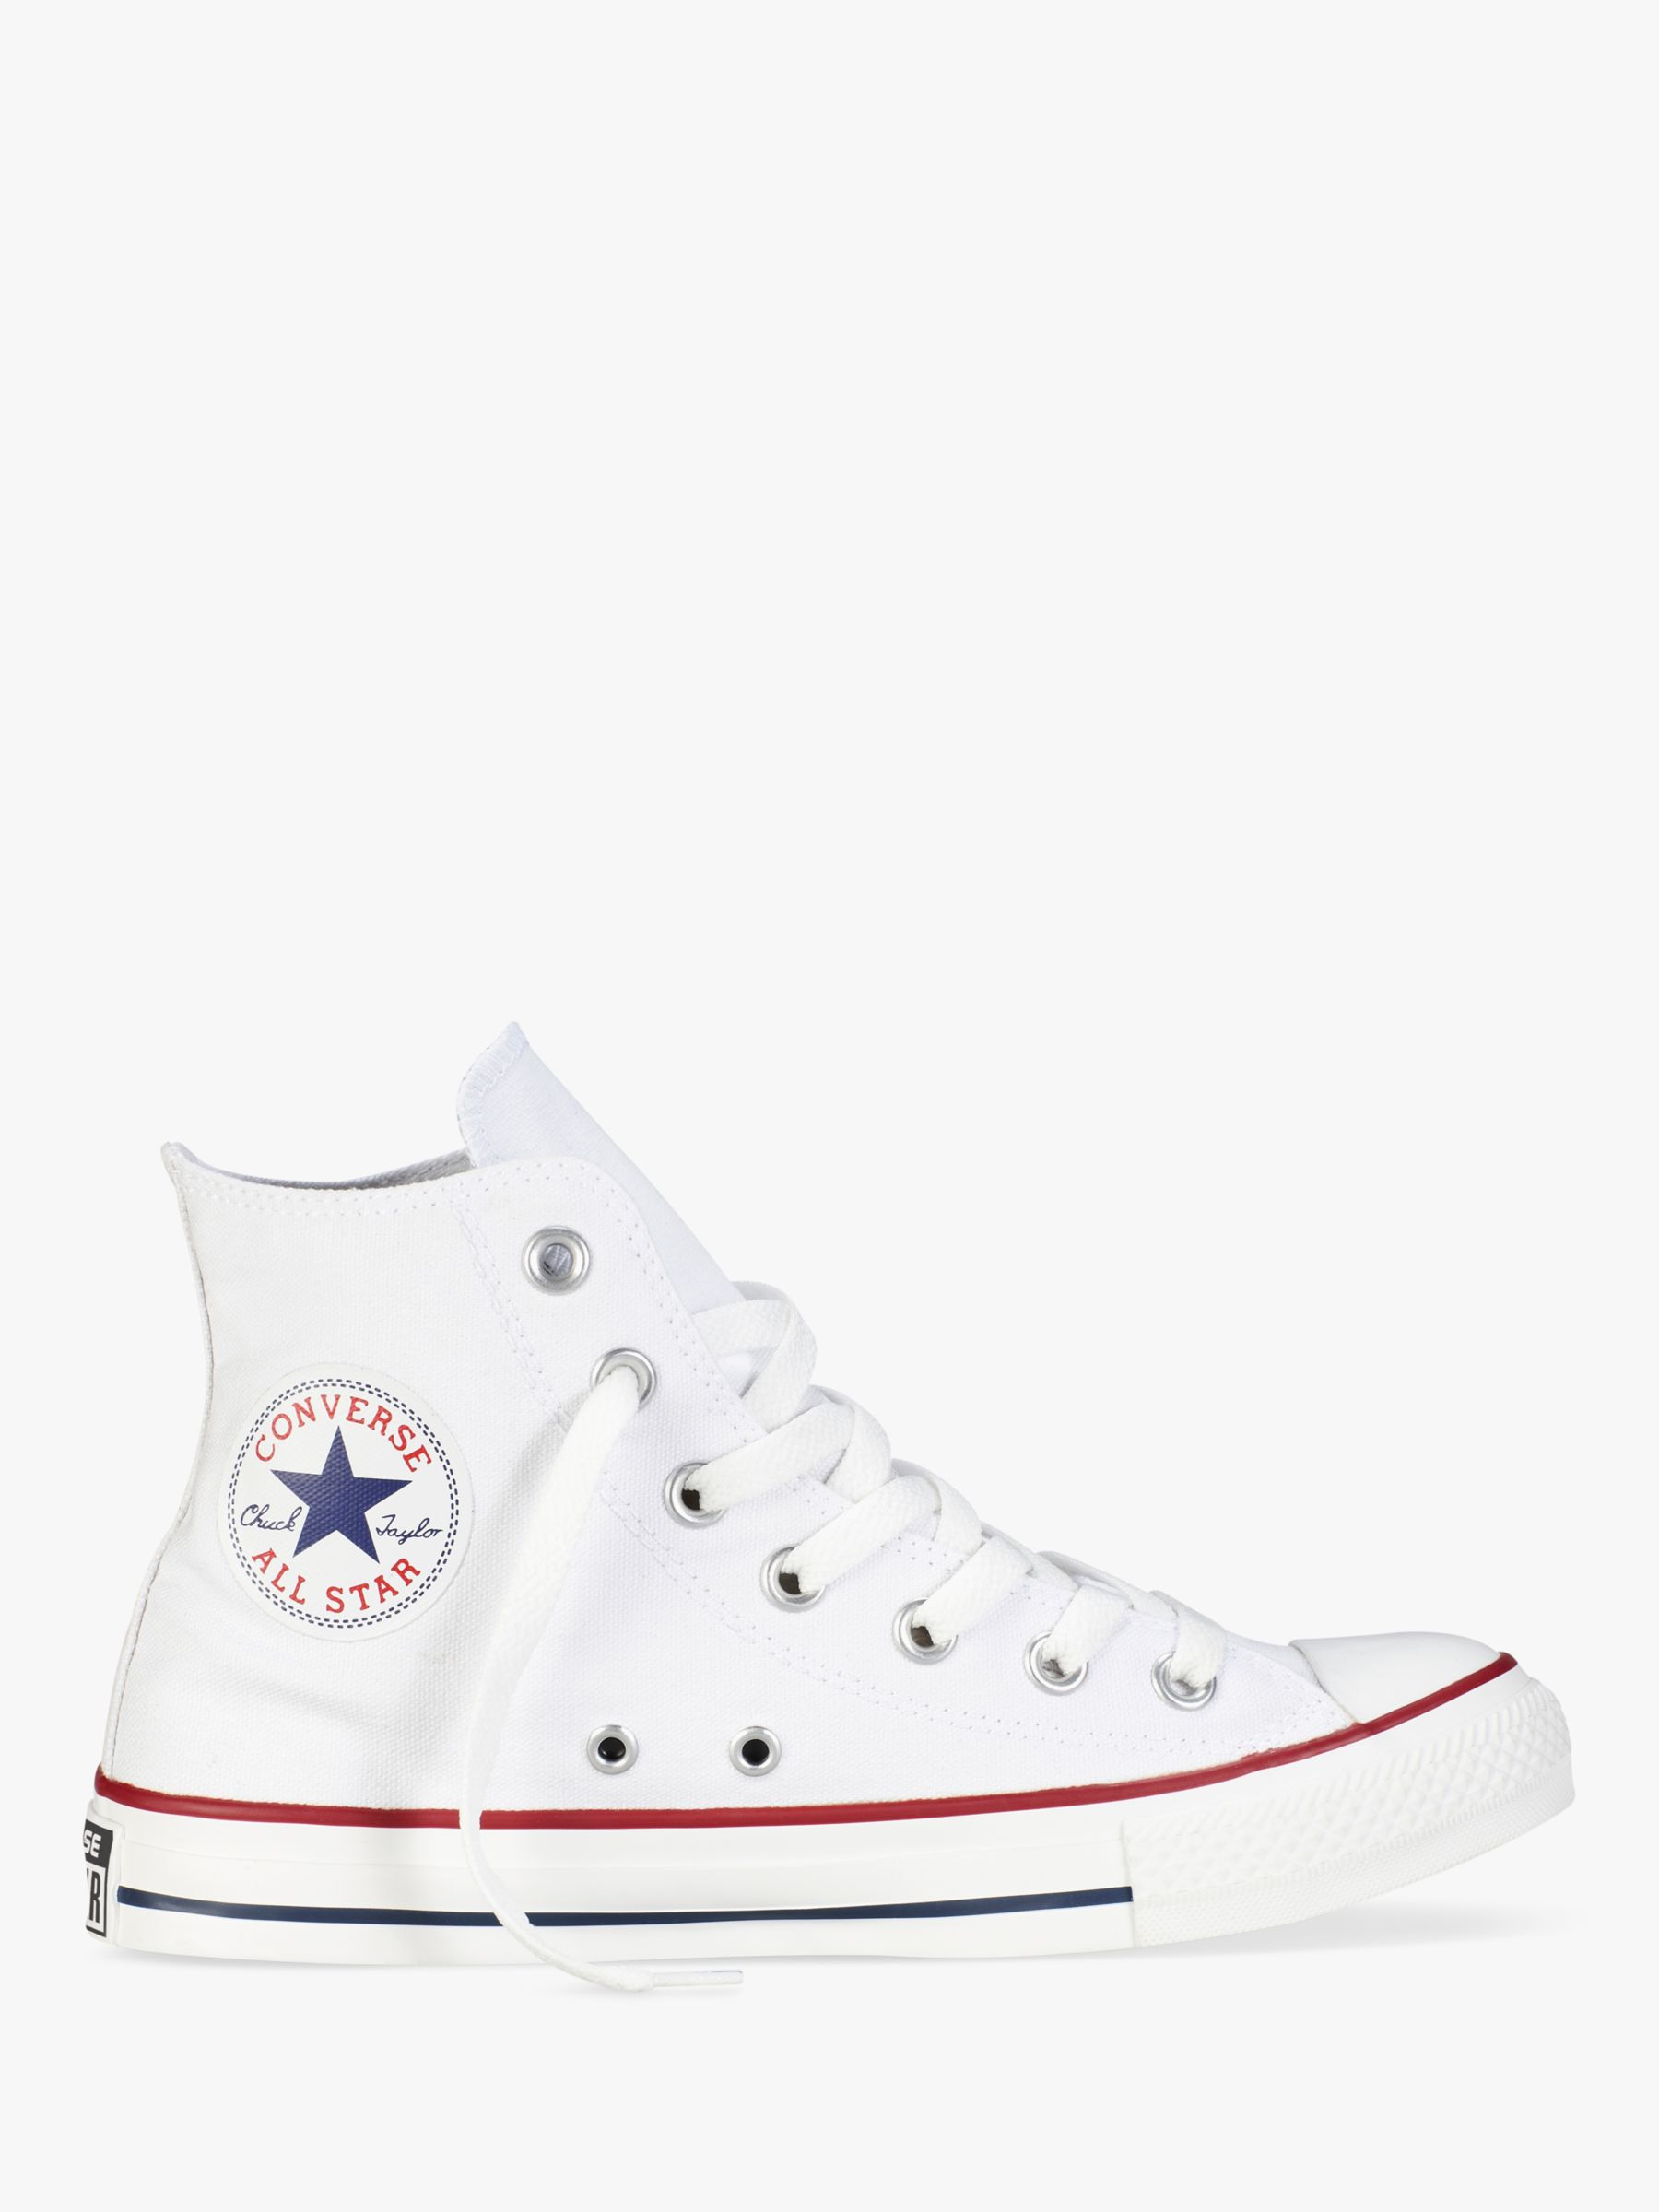 818d29dac7dd Converse Chuck Taylor All Star Canvas High-Top Trainers